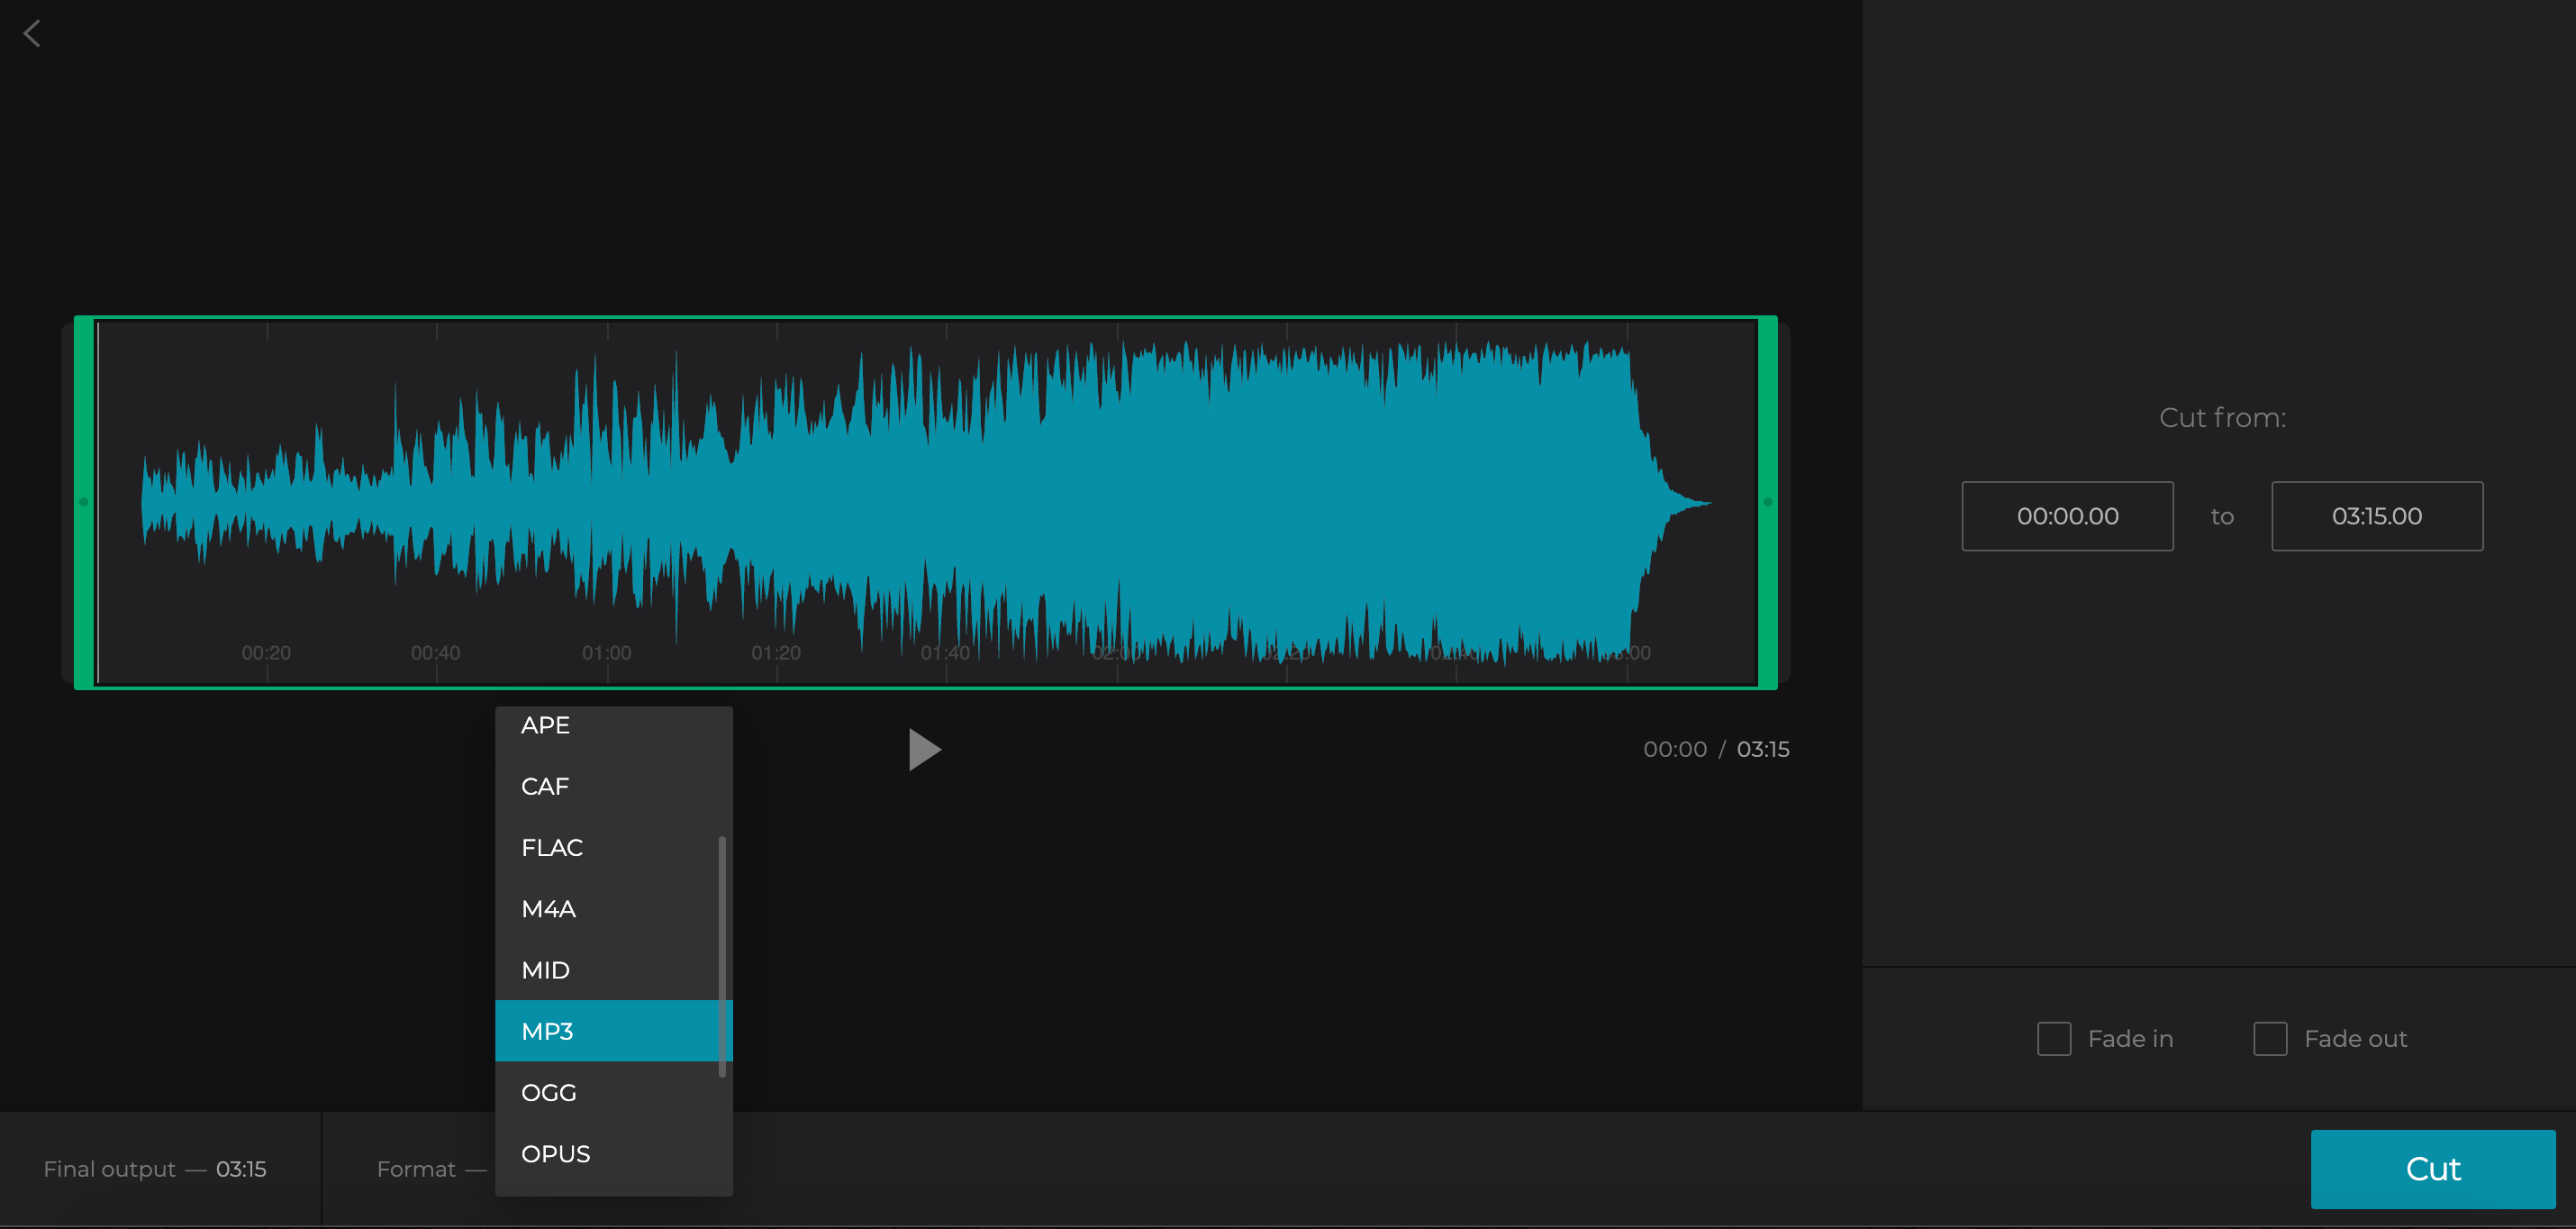 Cut the audio if needed and choose MP3 format